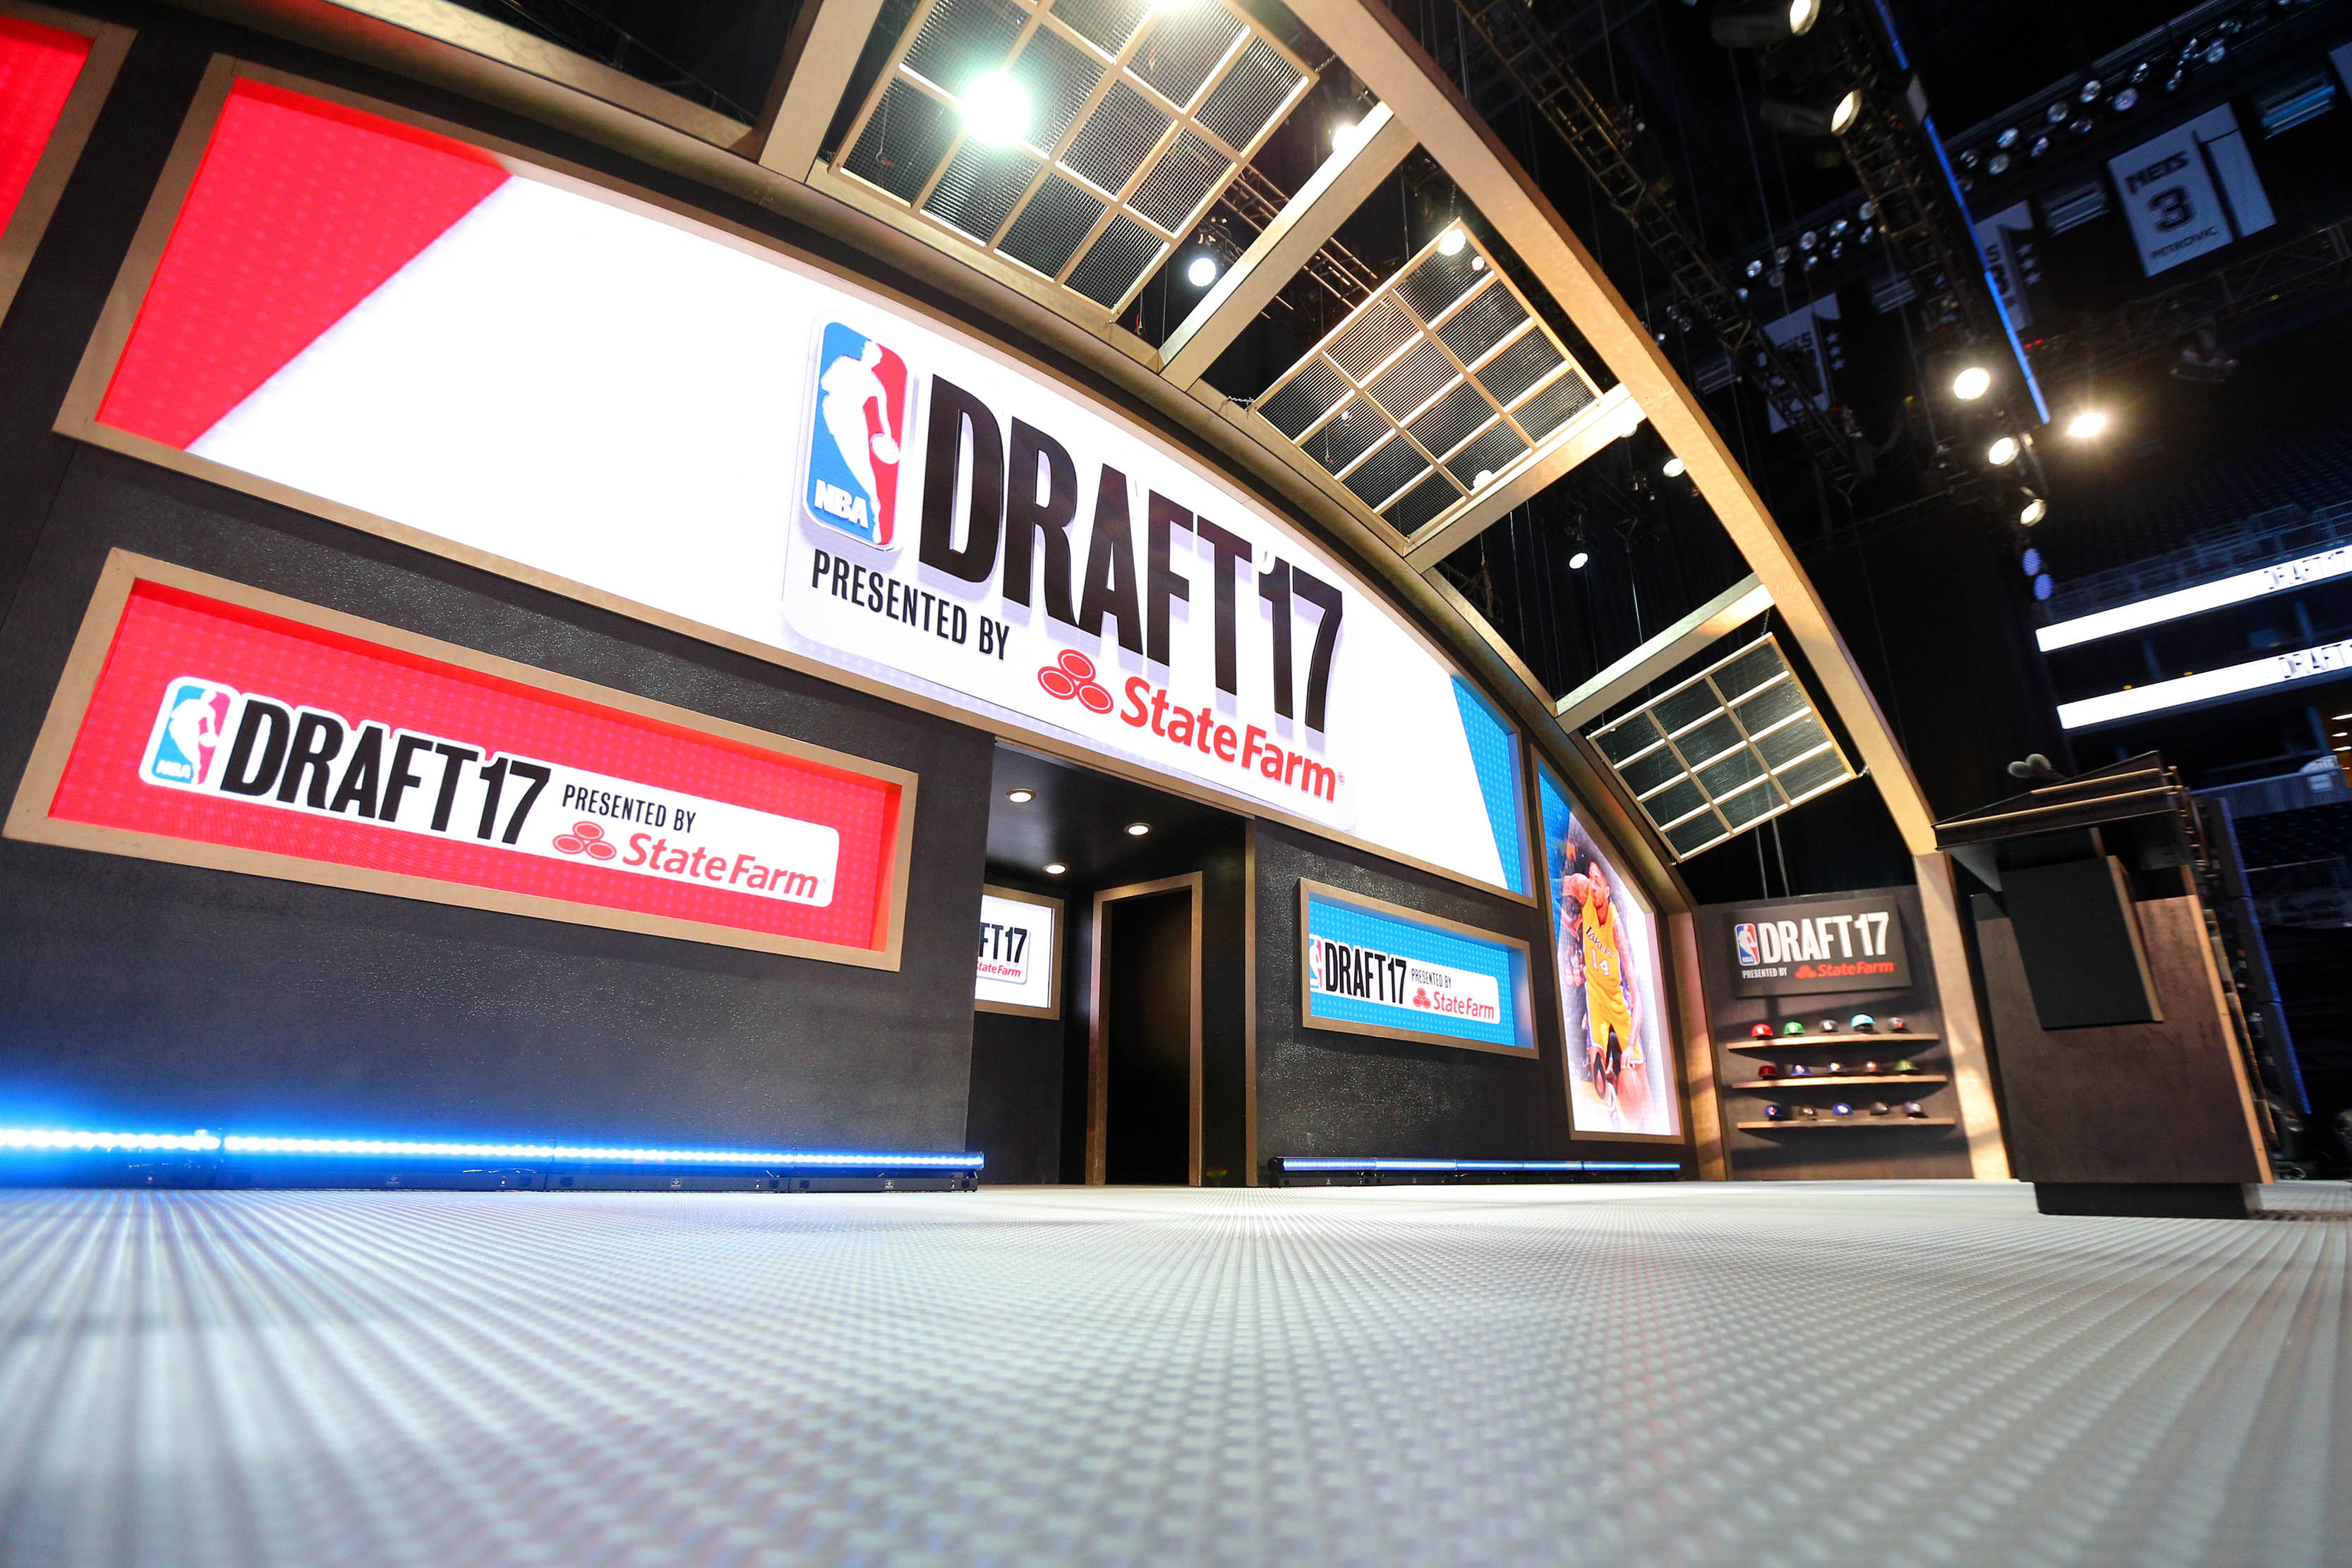 Jun 22, 2017; Brooklyn, NY, USA; General view of the stage before the 2017 NBA Draft at Barclays Center. Mandatory Credit: Brad Penner-USA TODAY Sports